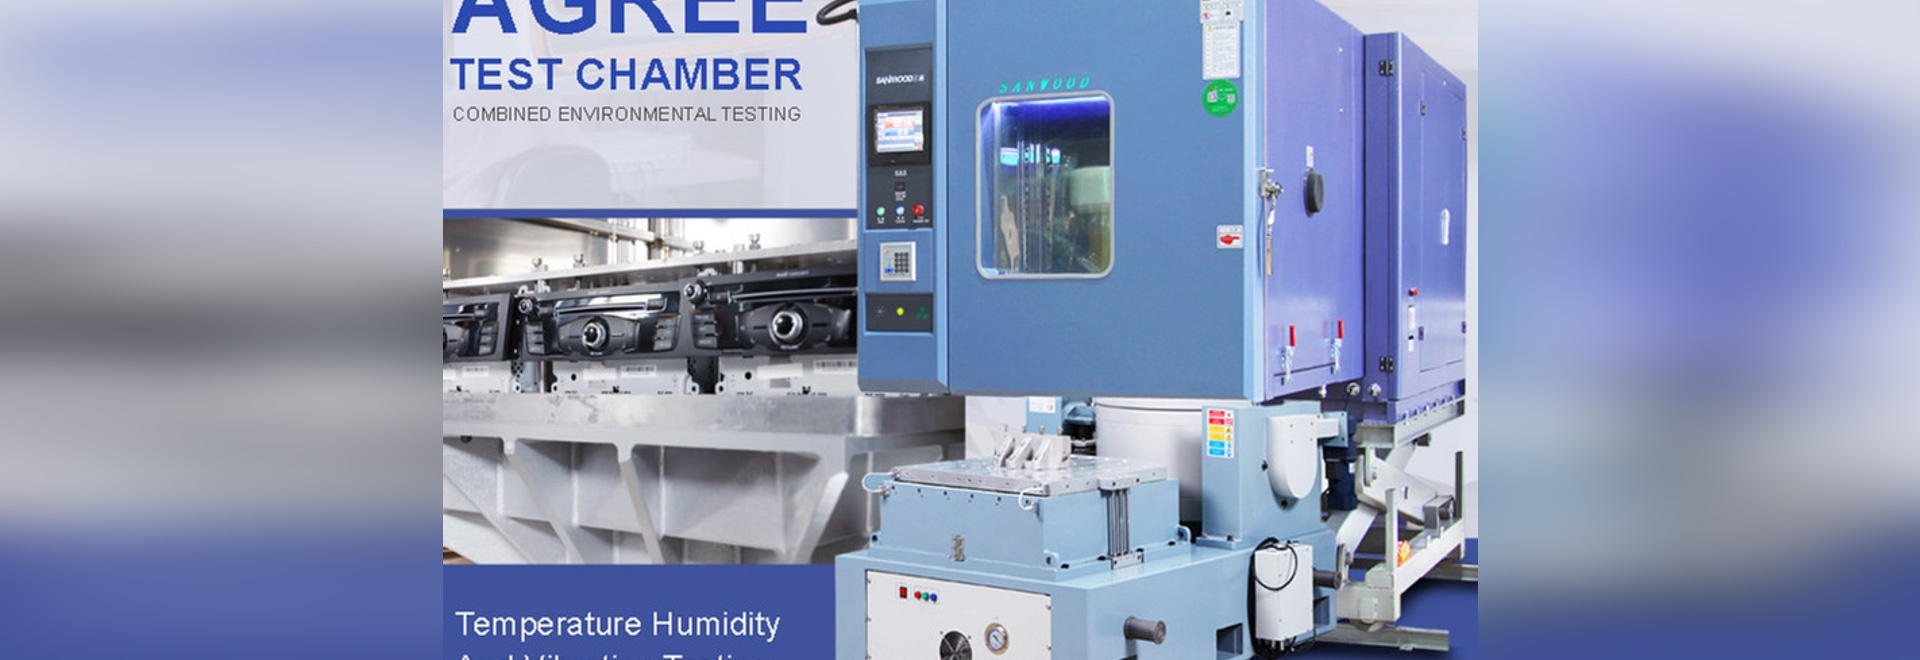 AGREE Test Chamber